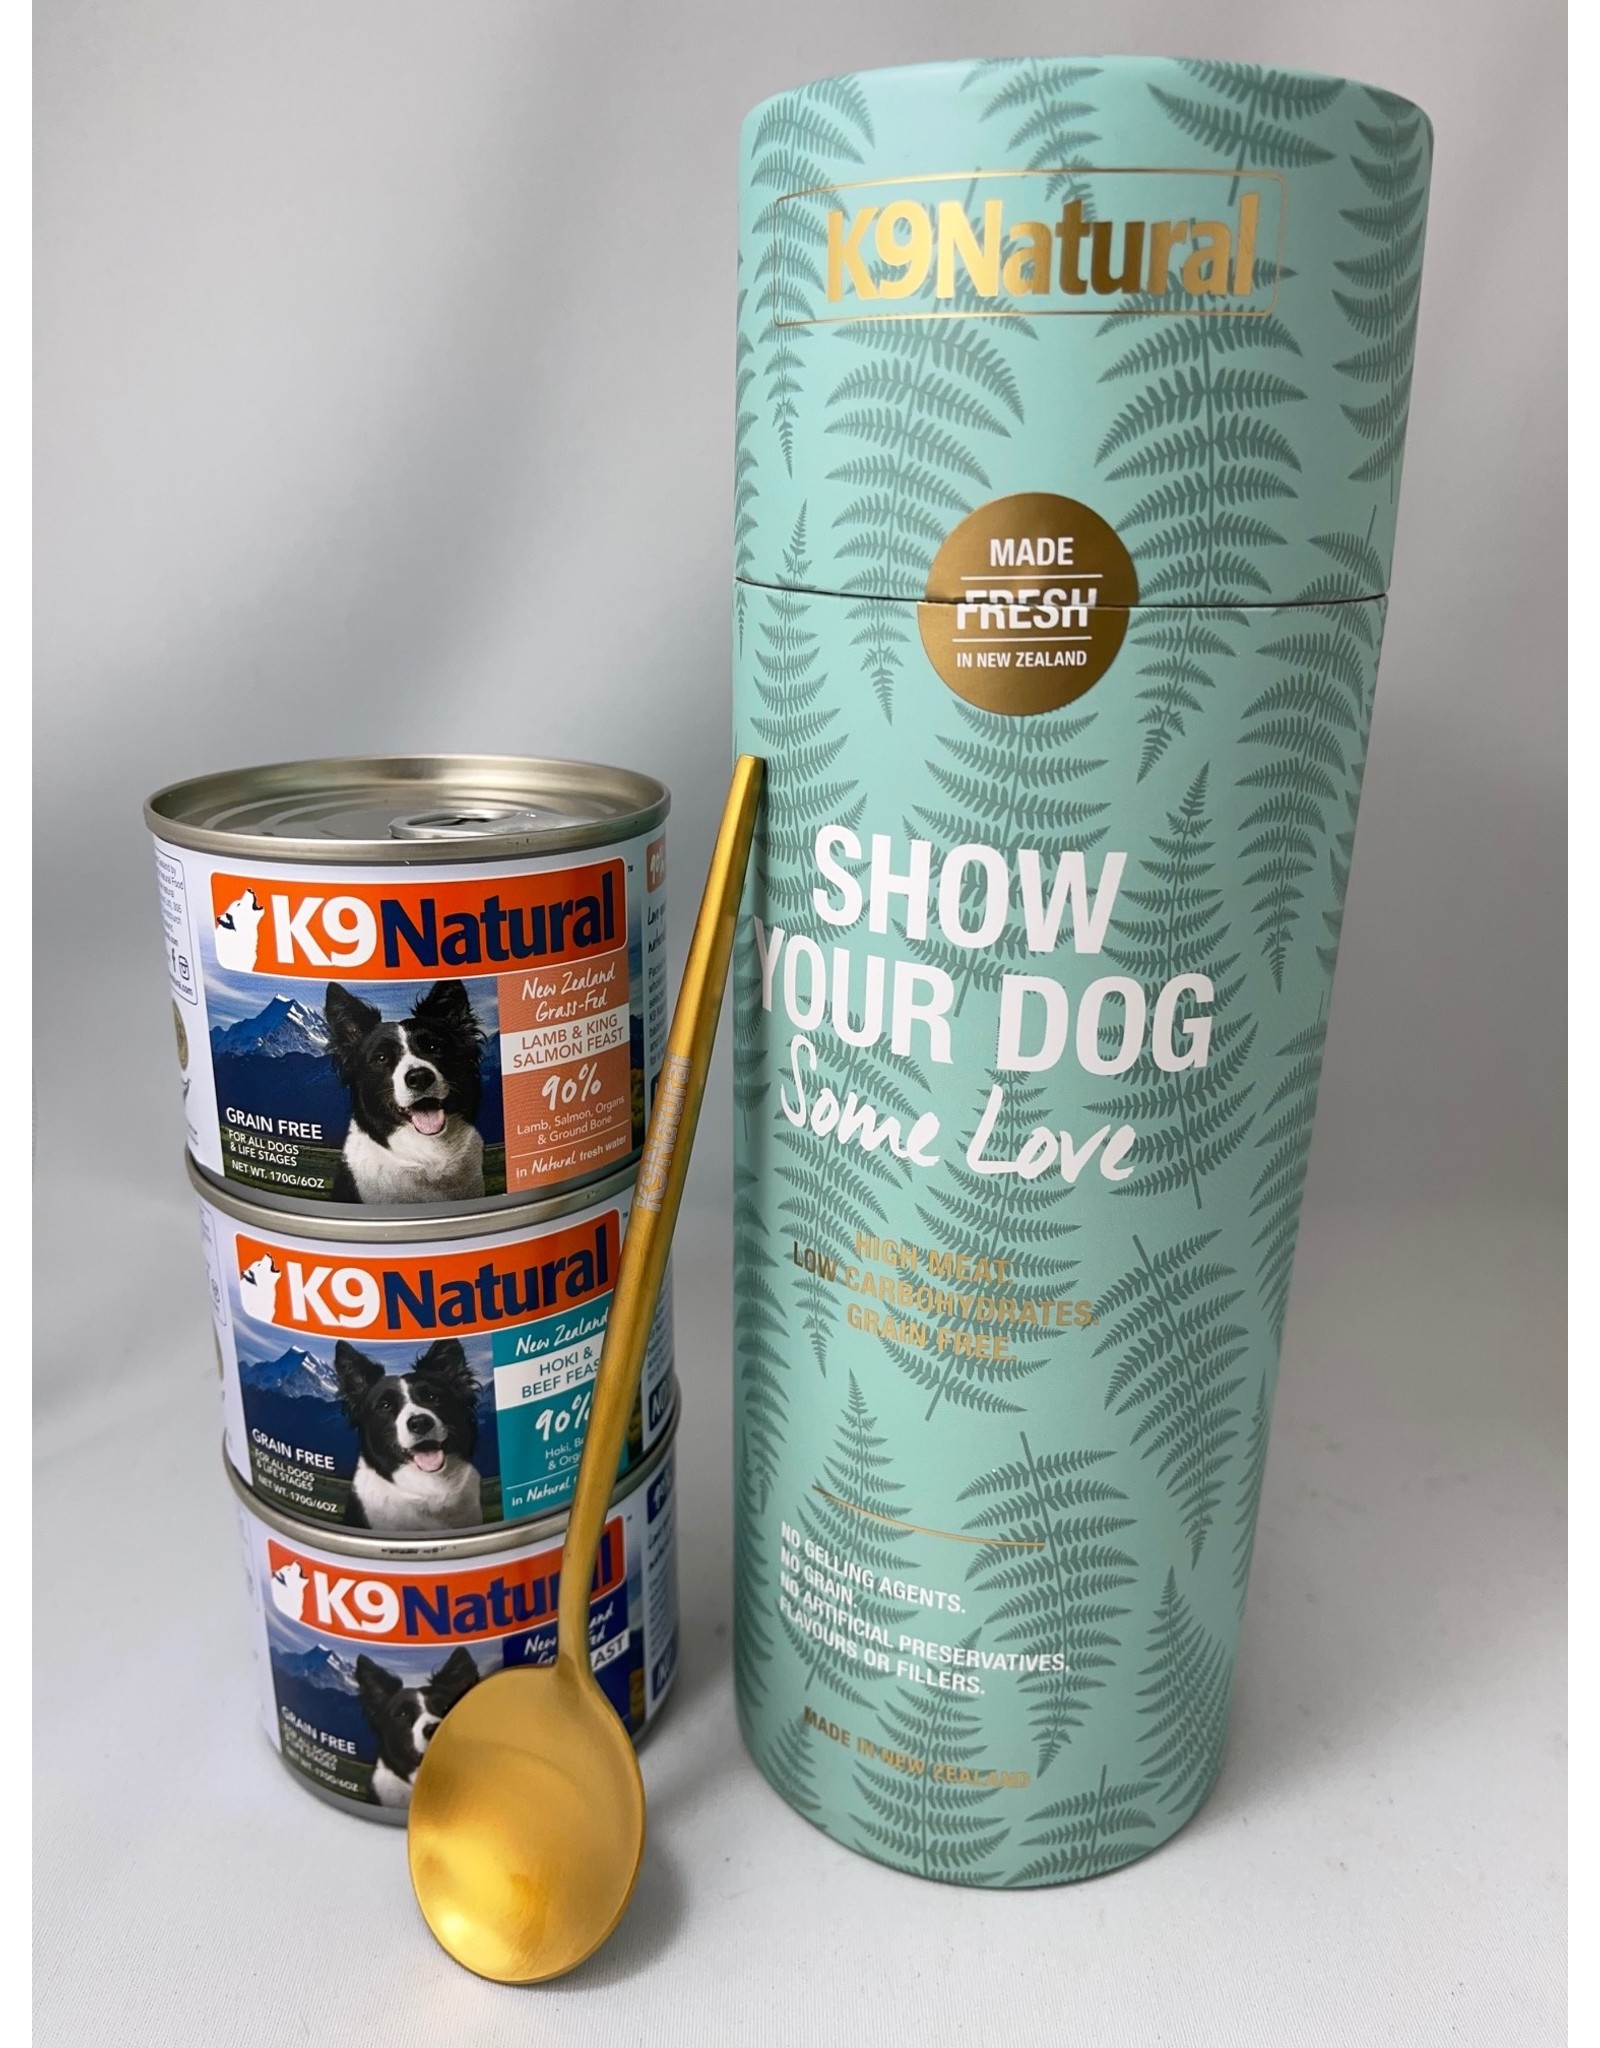 K9 Natural K9 Natural, Wet, Show Your Dog Some Love Canister 3x6oz